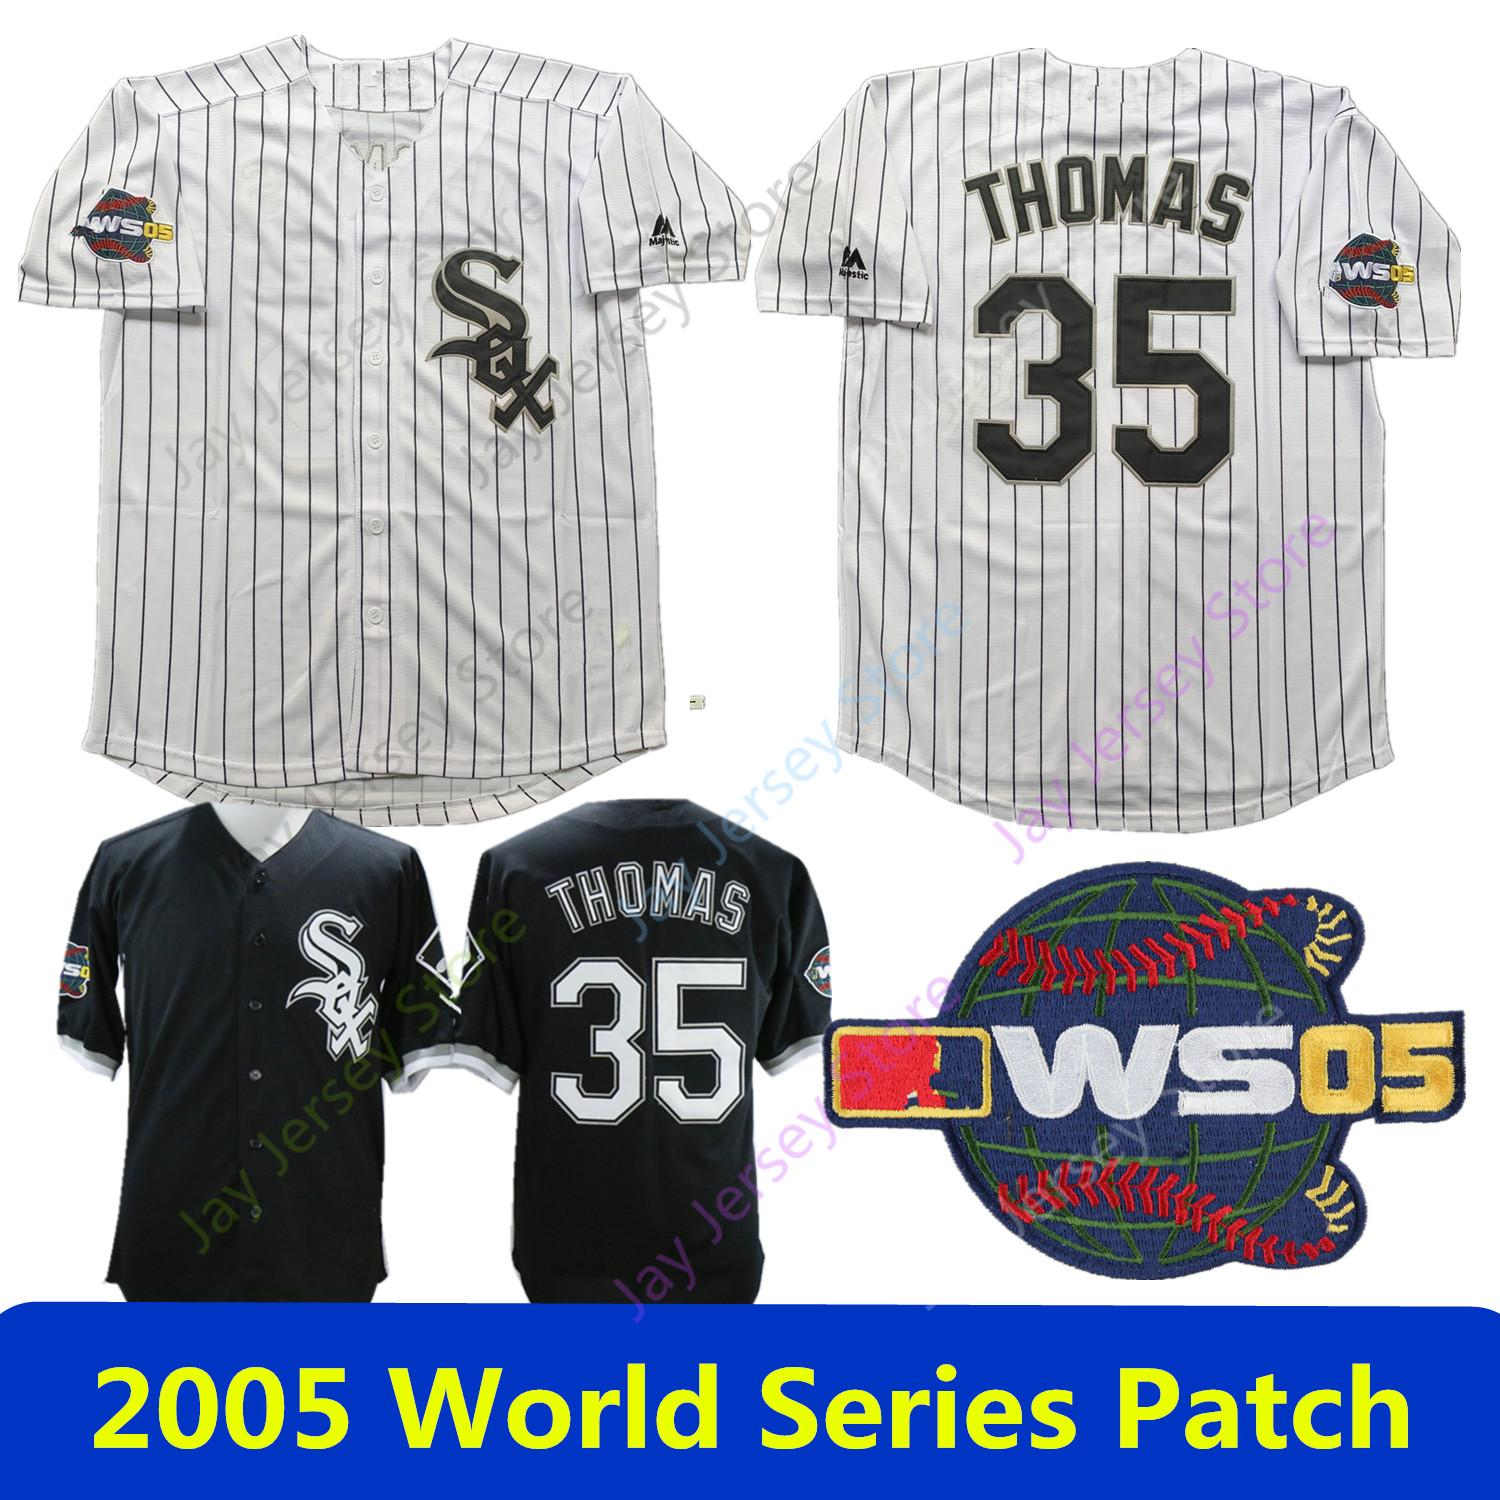 reputable site 57d32 06f09 Frank Thomas Jersey White Sox 2005 World Series All Stitched Home Away  Chicago Baseball Jerseys White Pinstripe Black Mesh BP